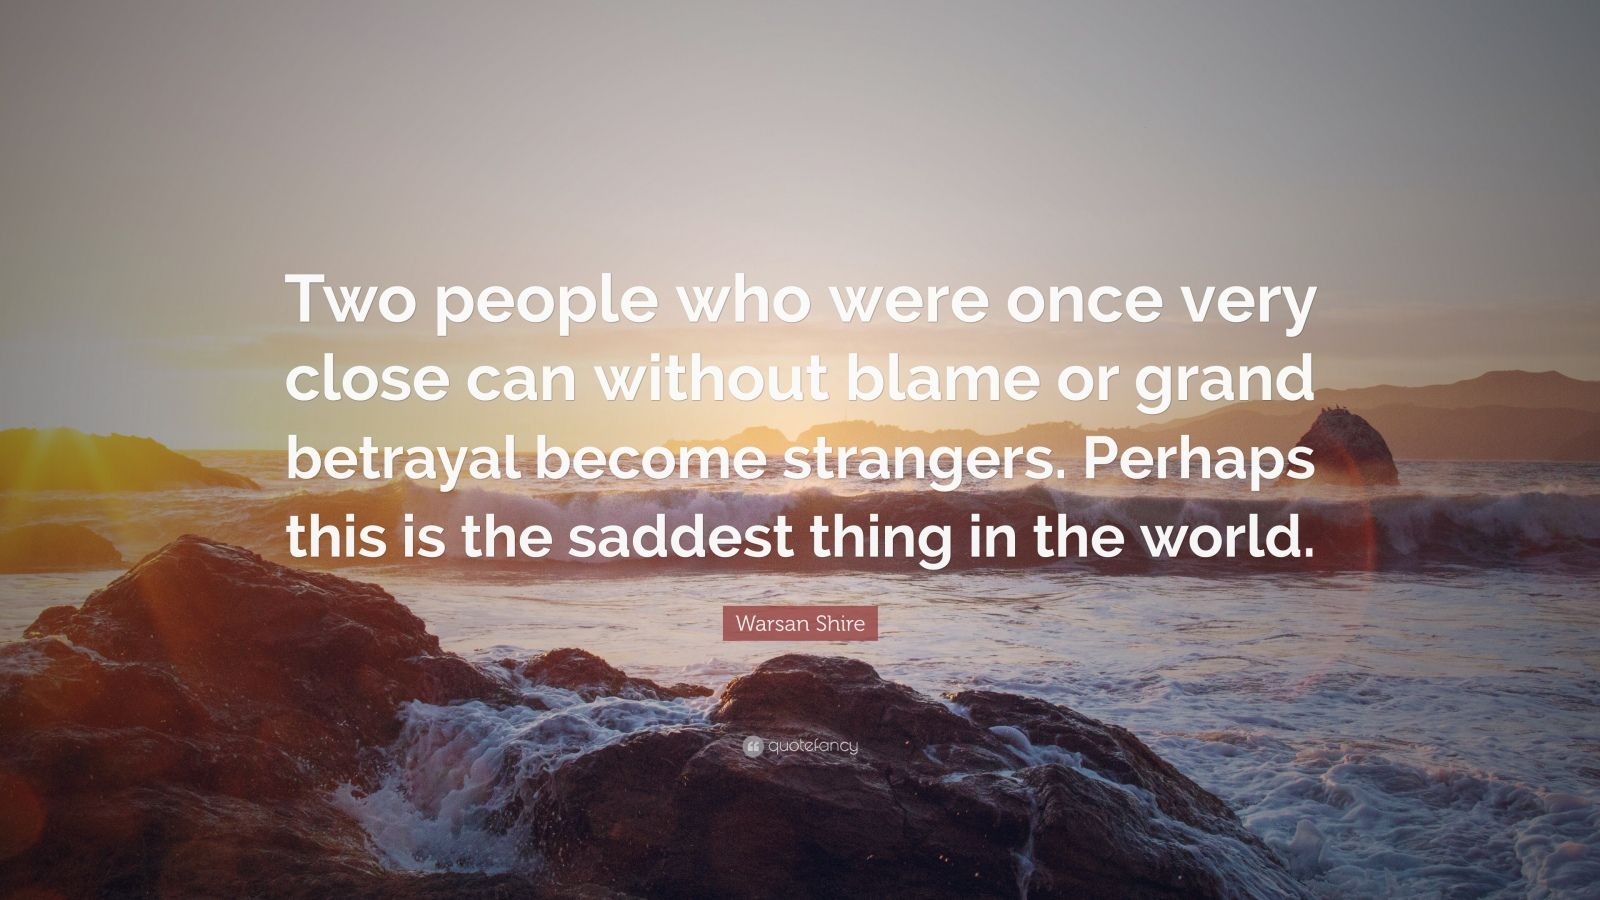 "Warsan Shire Quote: ""Two people who were once very close can without blame or grand betrayal become strangers. Perhaps this is the saddest thing in the world."""